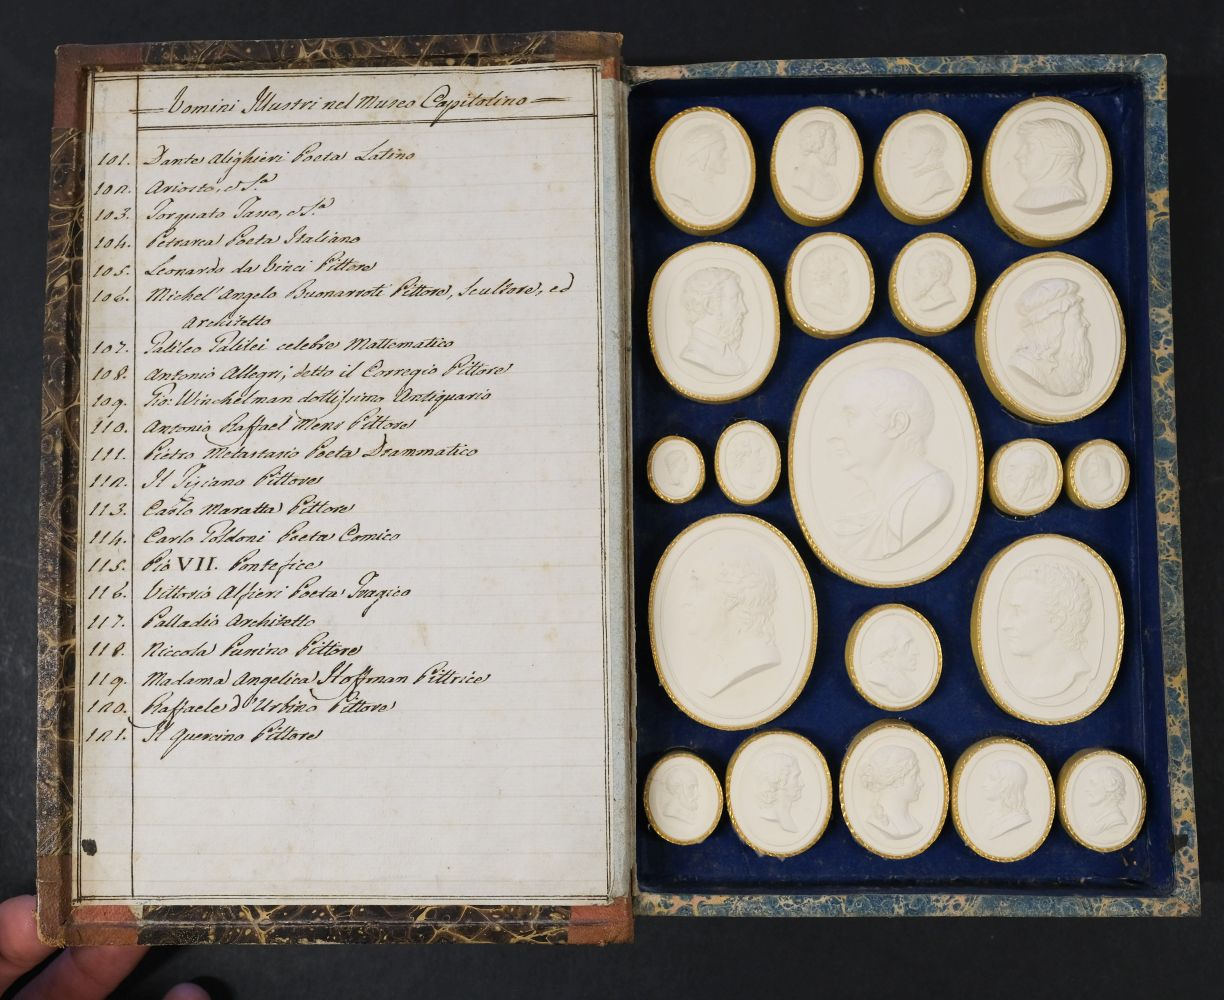 Paoletti (Bartolomeo and Pietro). A collection of 300 plaster cameos, 1820 - Image 15 of 16